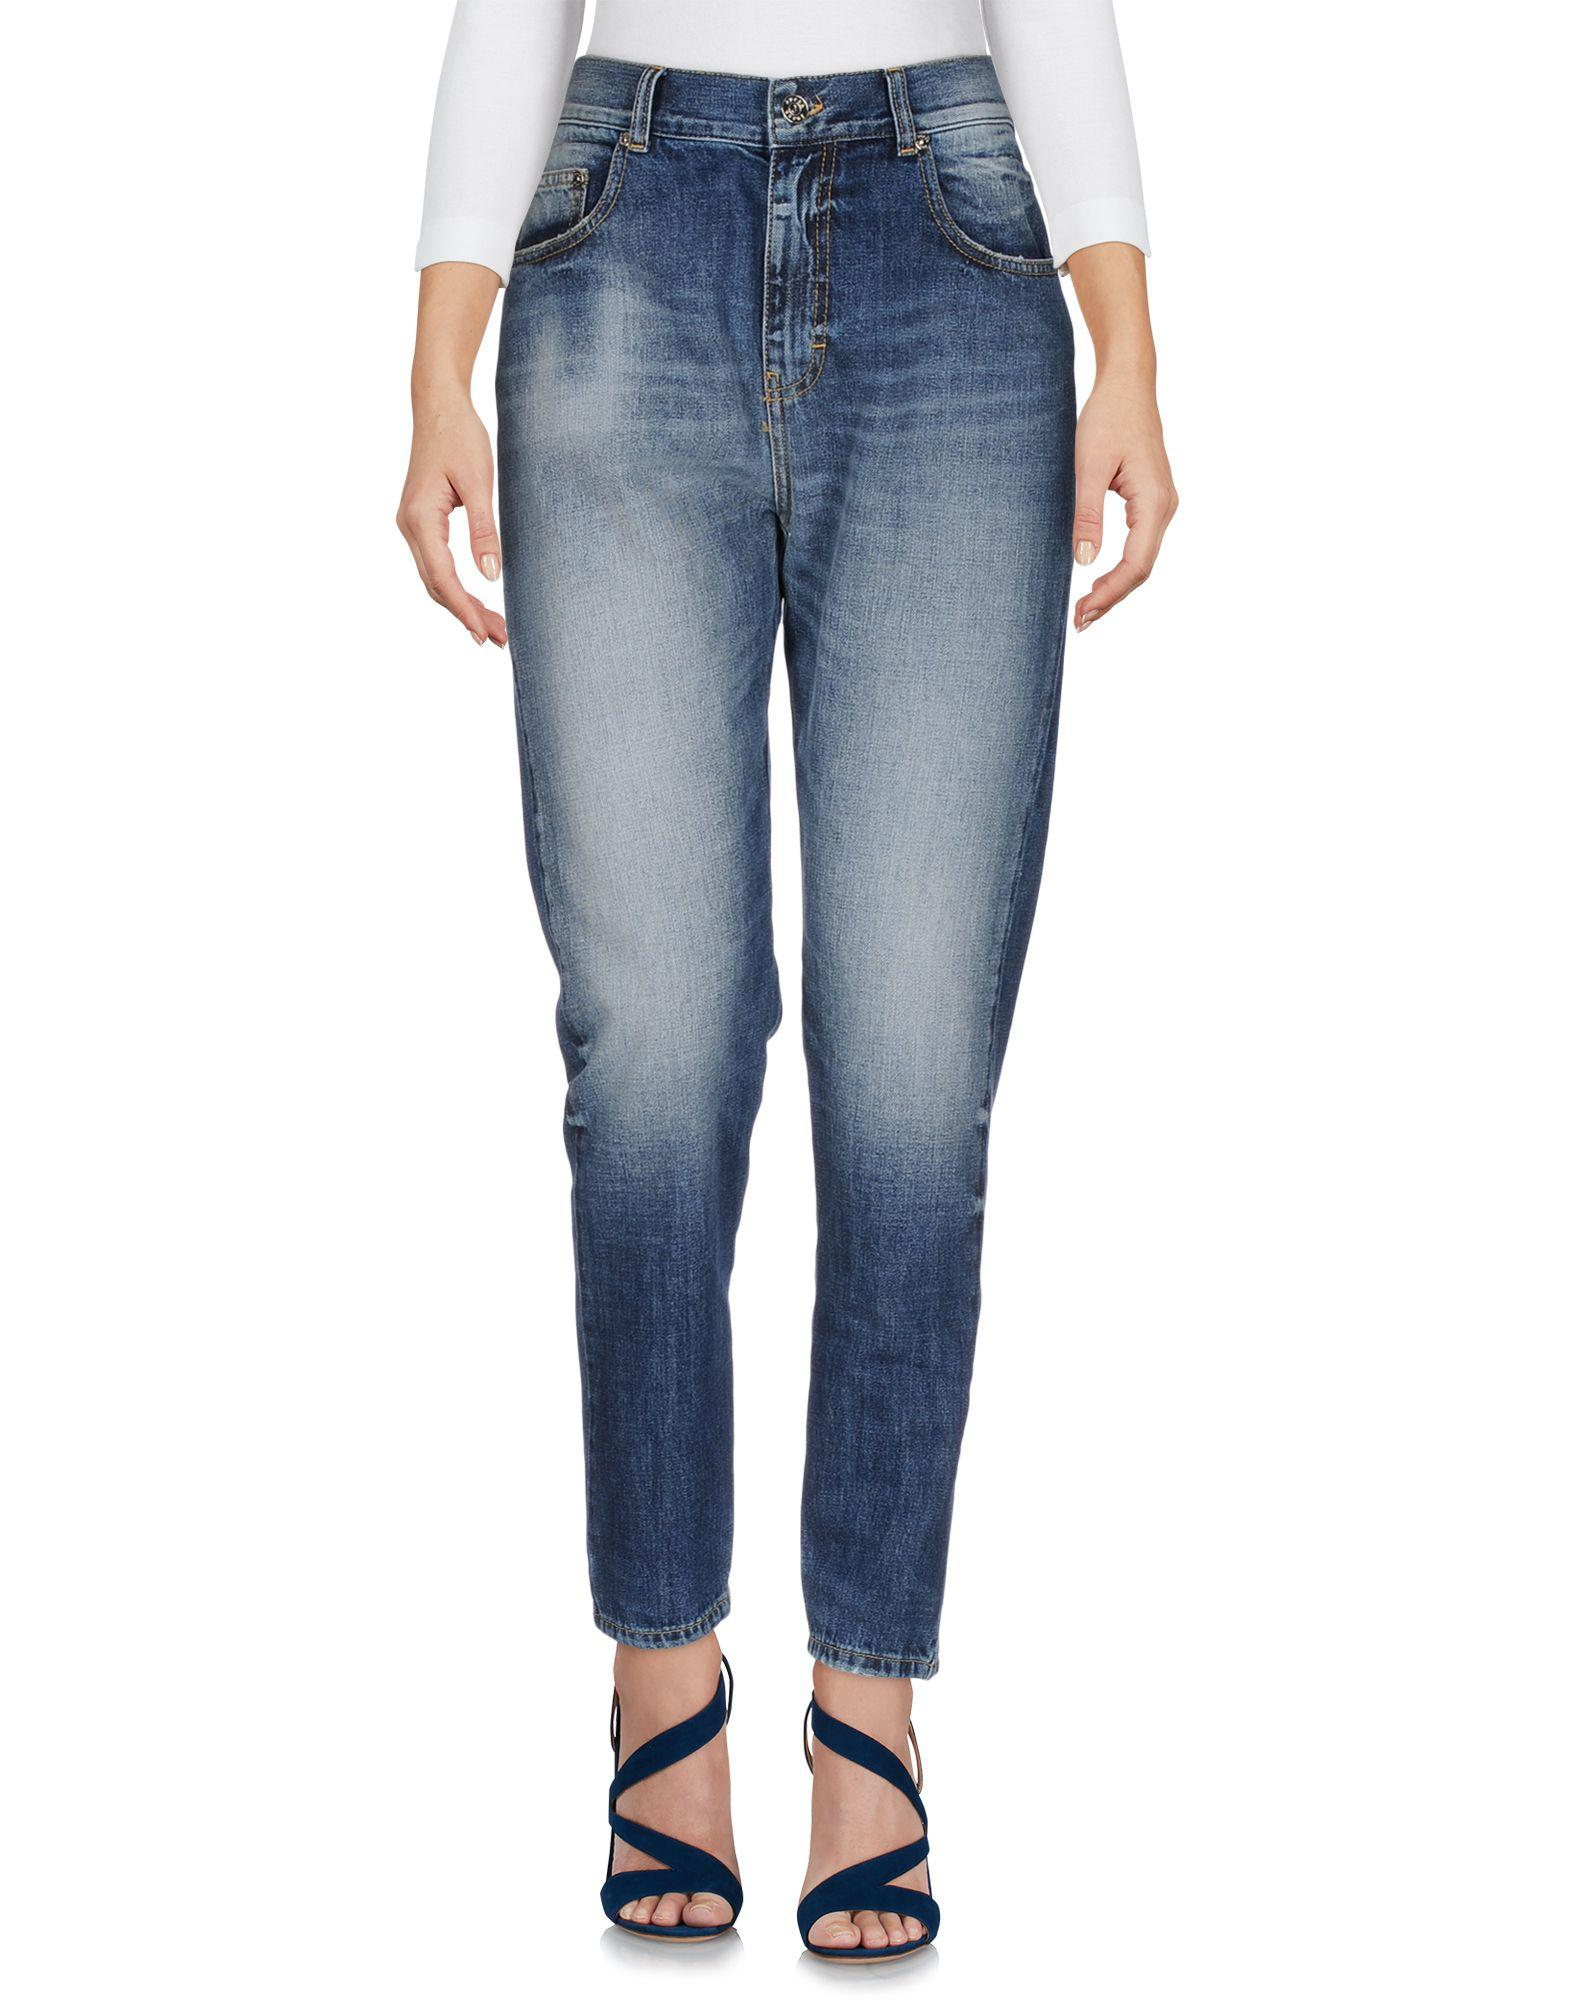 DENIM - Denim trousers Jucca Cheap Top Quality How Much Online Wiki Online Sale Visa Payment With Paypal Sale Online 7AwPj9t